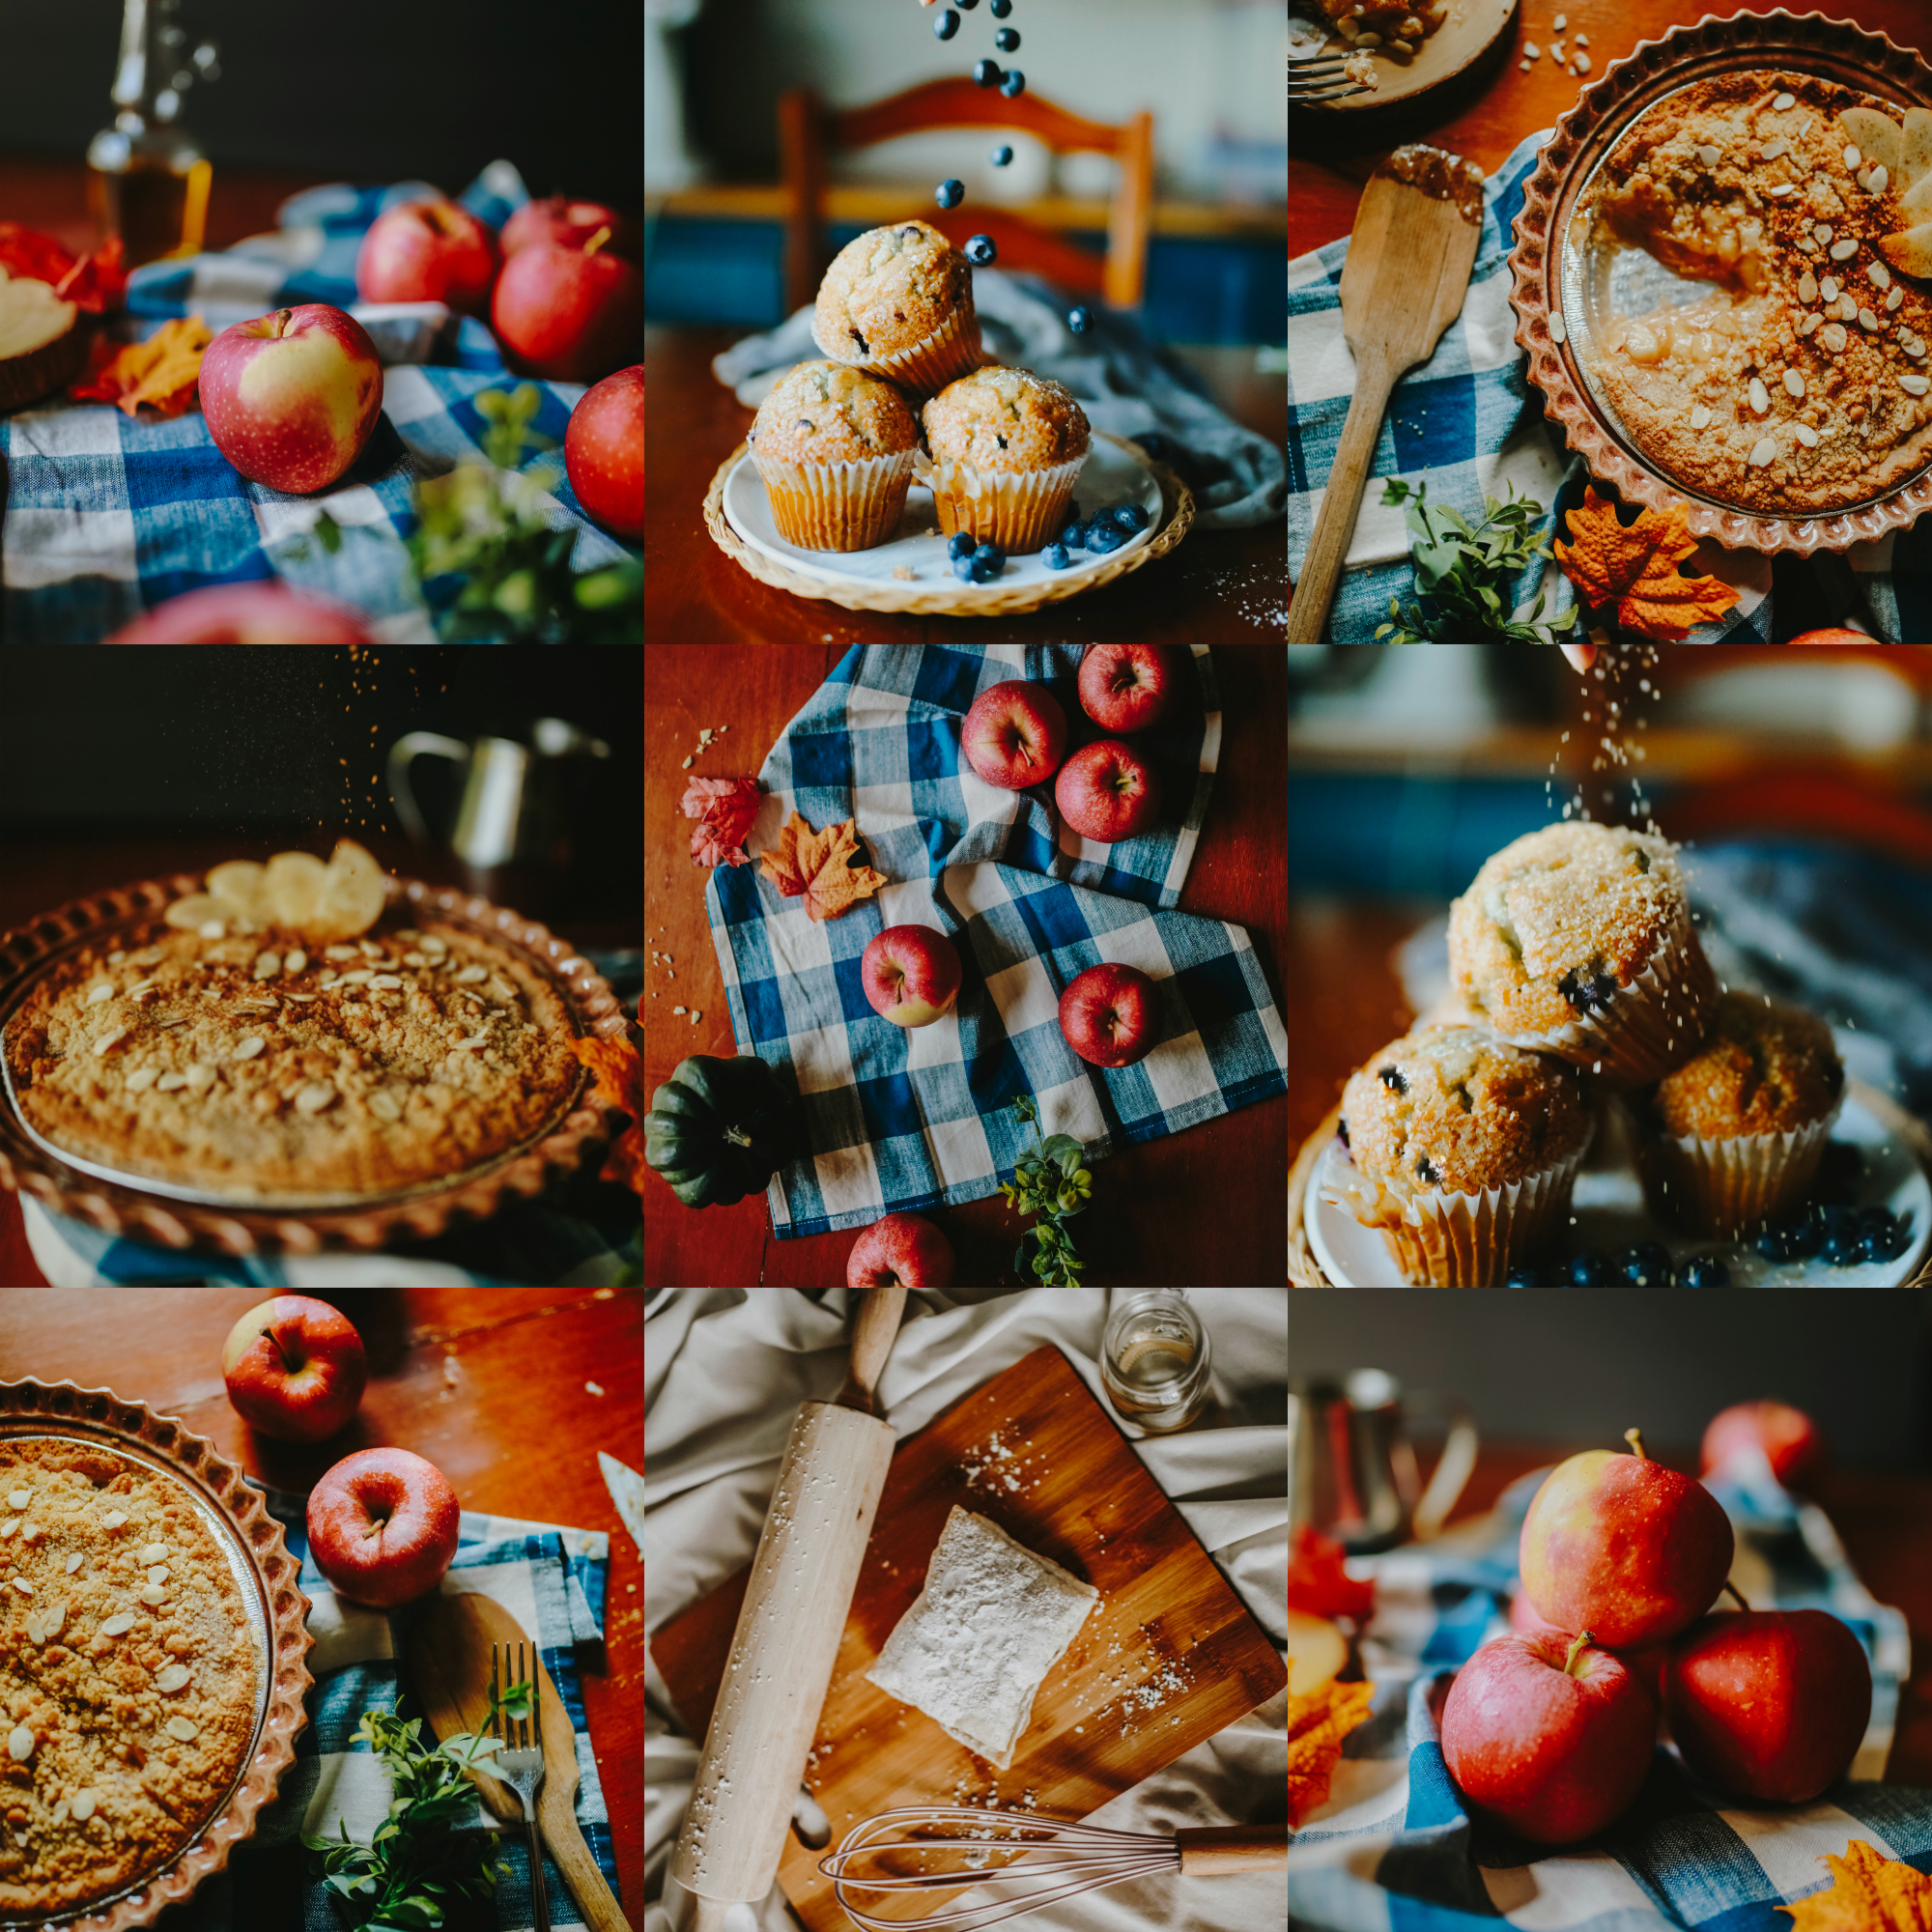 Seasonal Instagram Example Mockup: - Used a mix of fall-themed desserts from my recent styled food shoots to create this mockup.